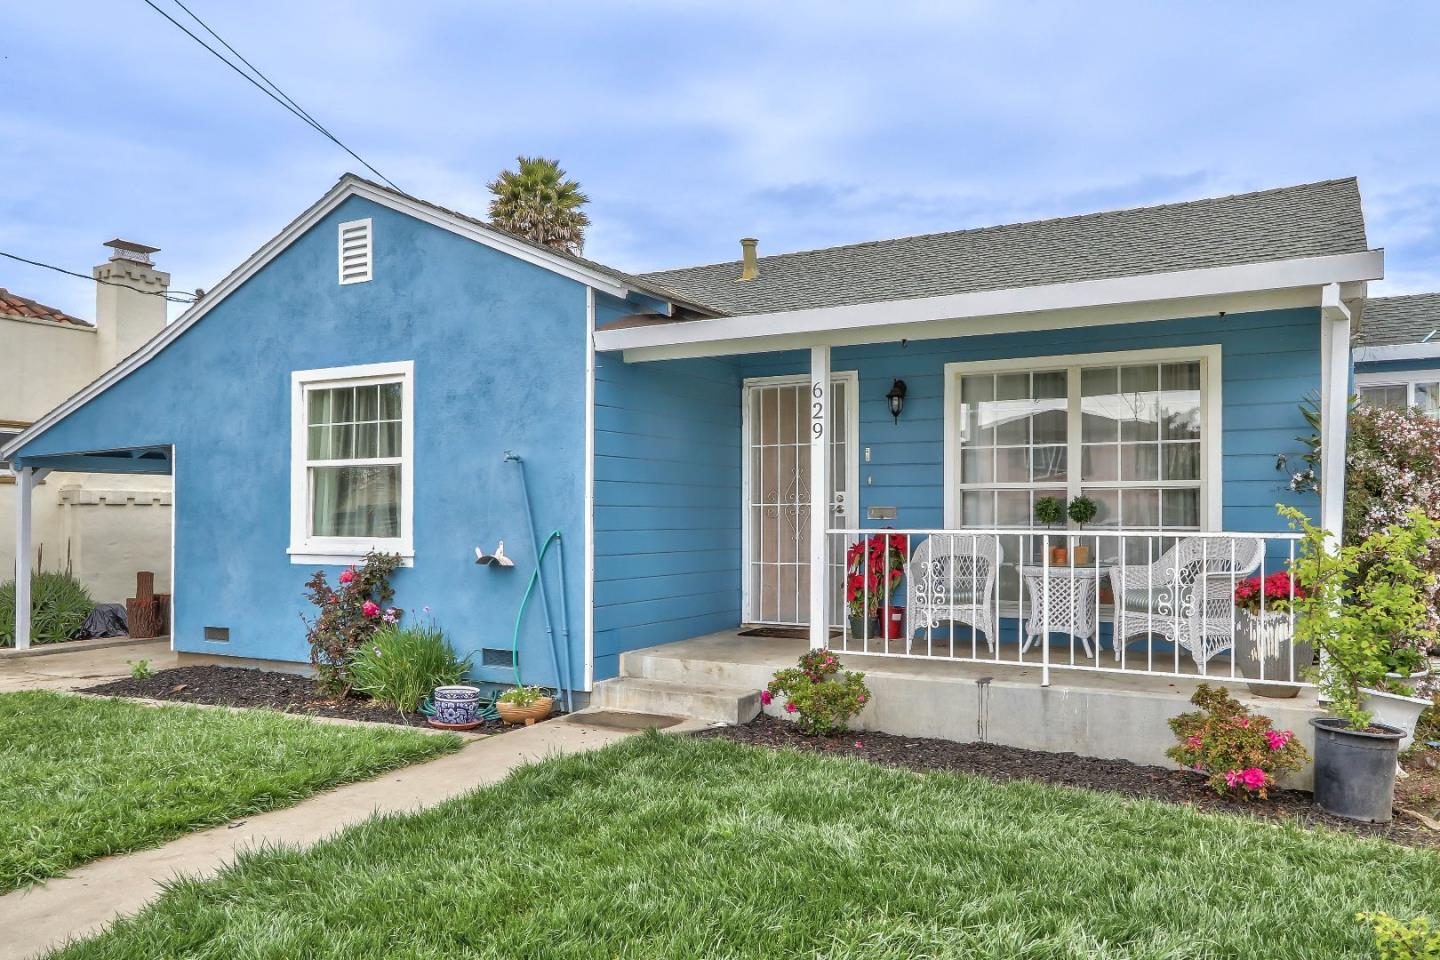 Detail Gallery Image 1 of 25 For 629 California St, Watsonville, CA, 95076 - 3 Beds | 1 Baths